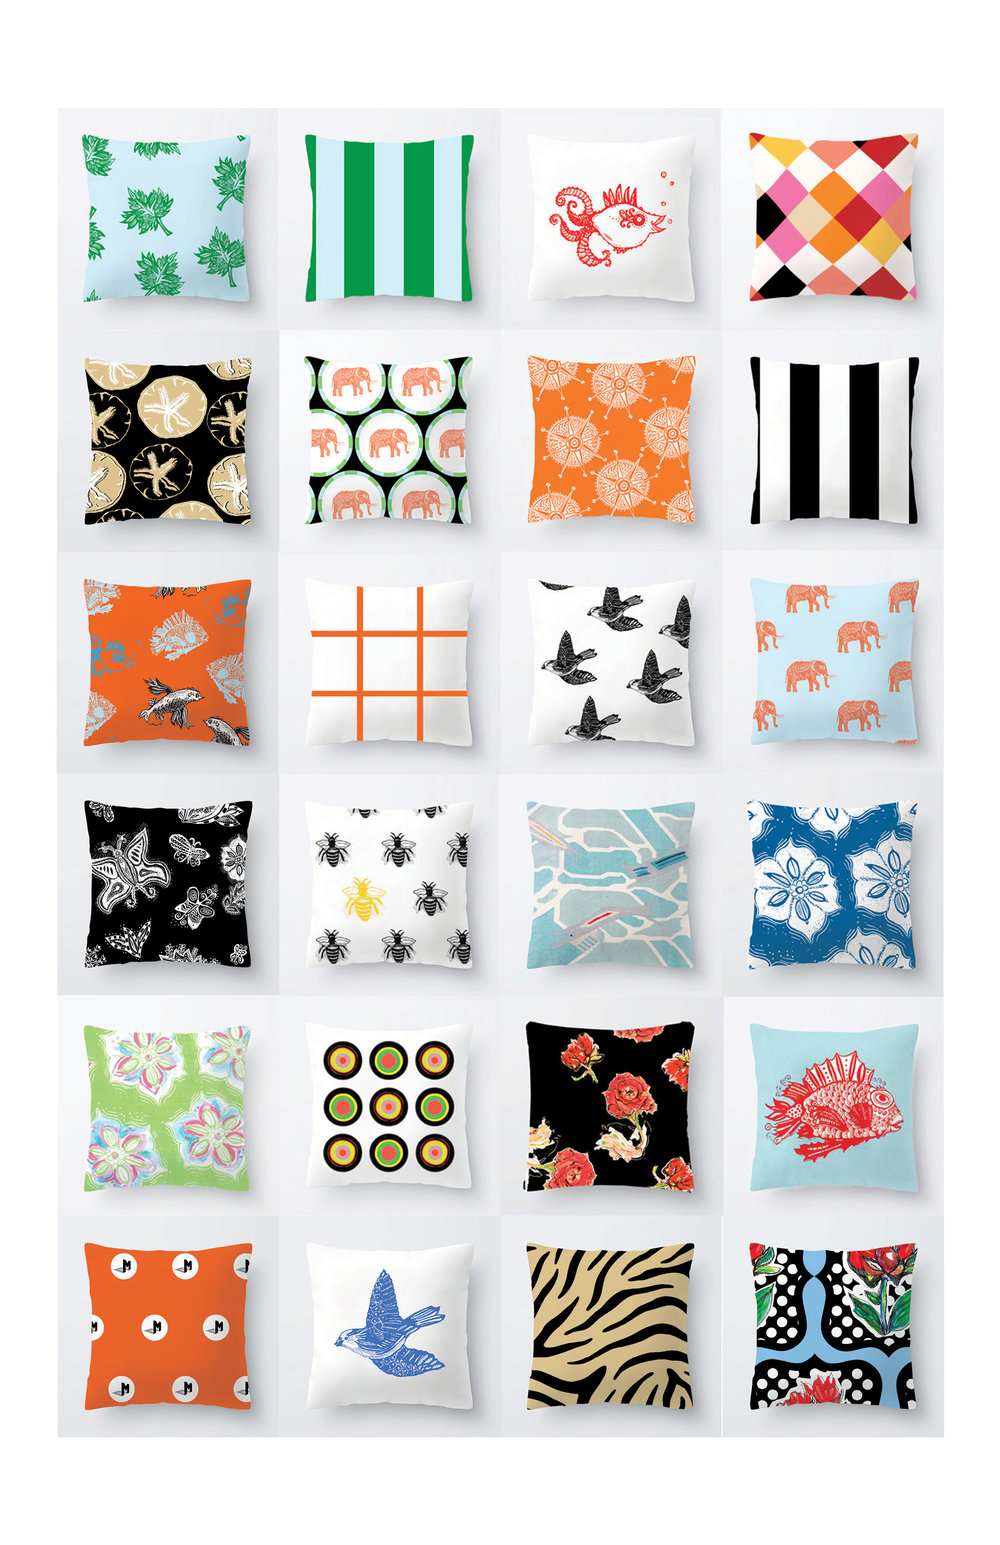 ME+Design+Square+pillows+20up+12-29-17.jpg